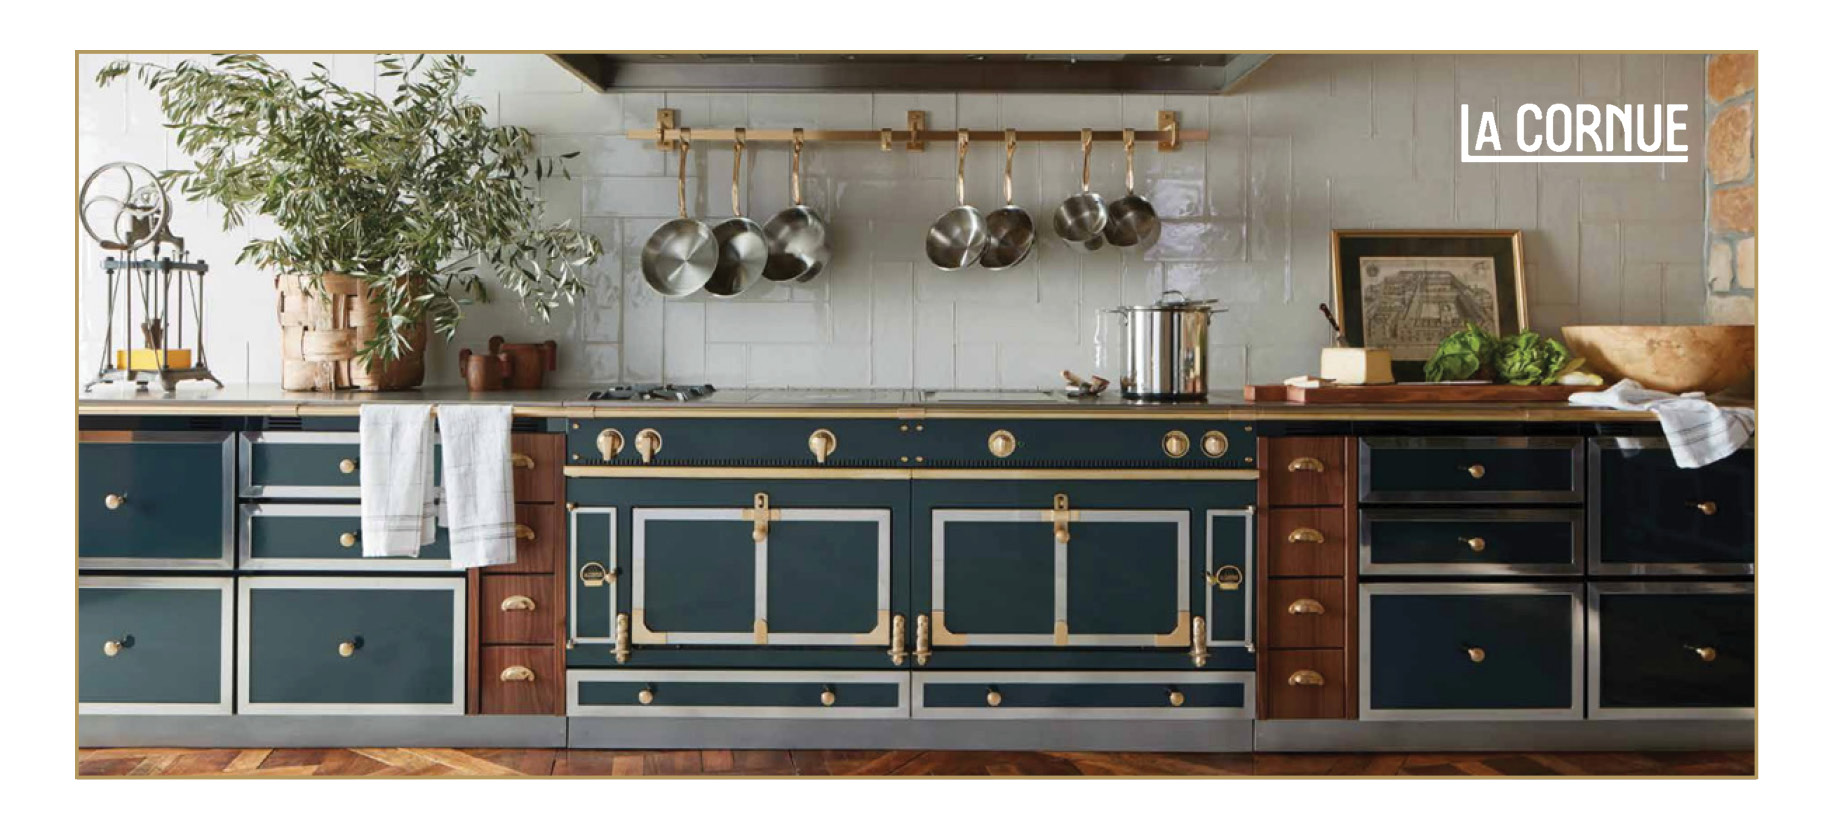 La Cornue CornuFé Range in green and brass. Pots and pans hanging. Food on the counter.